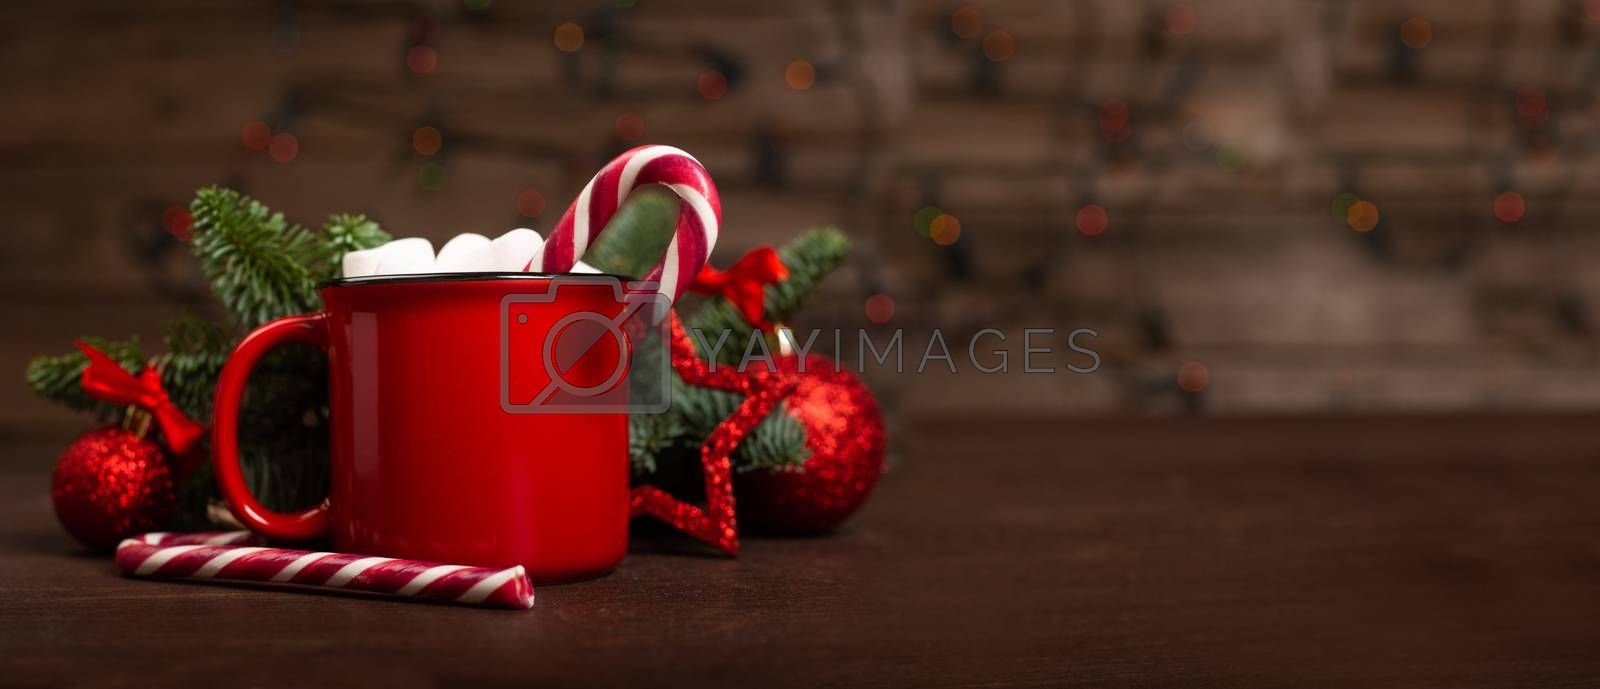 Cocoa hot chocolate in red mug with marshmallows candy cane fir tree branches and red baubles on dark wooden background